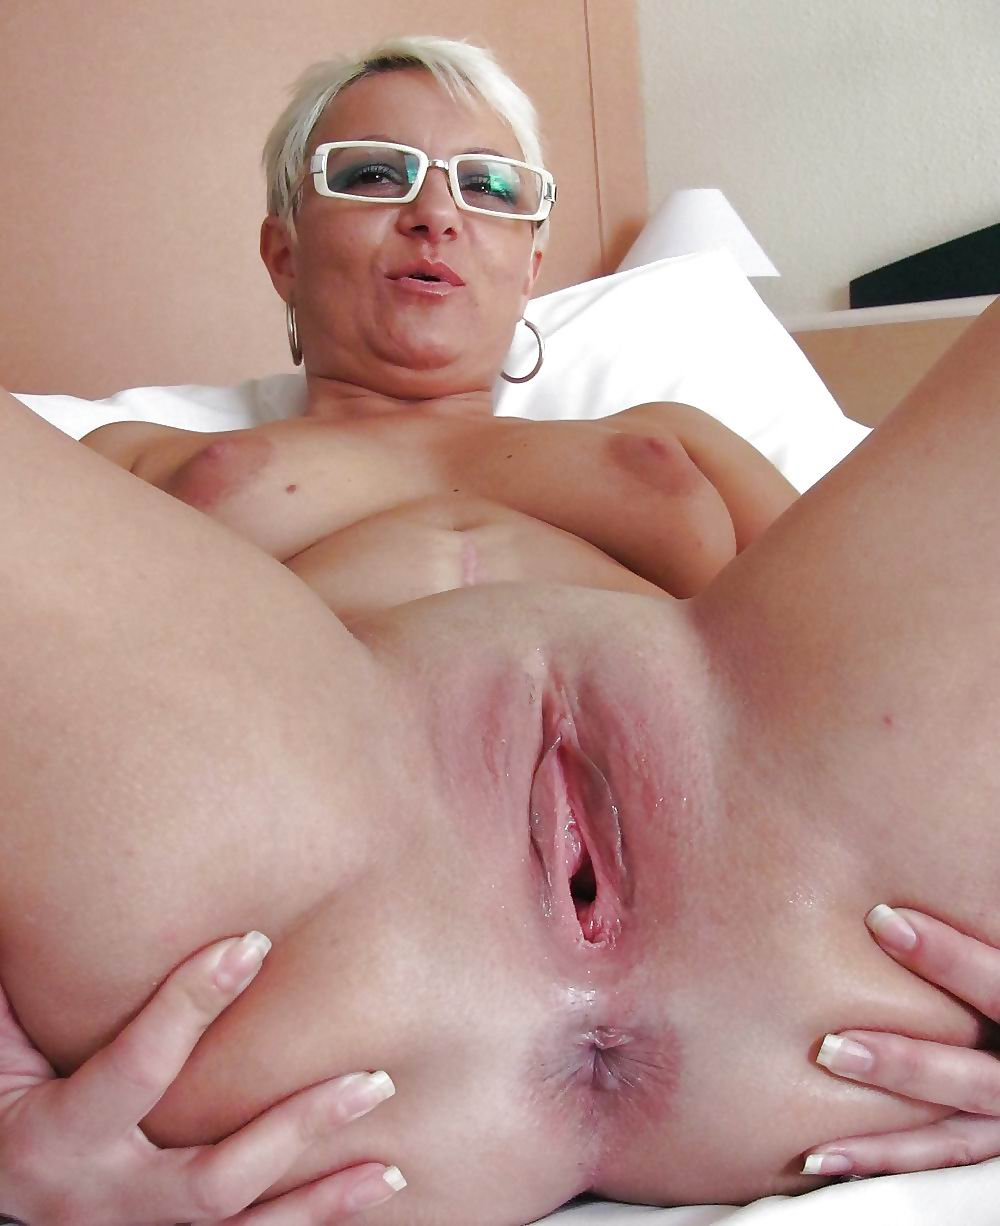 oma pass - best granny porn for mature and granny porn lovers